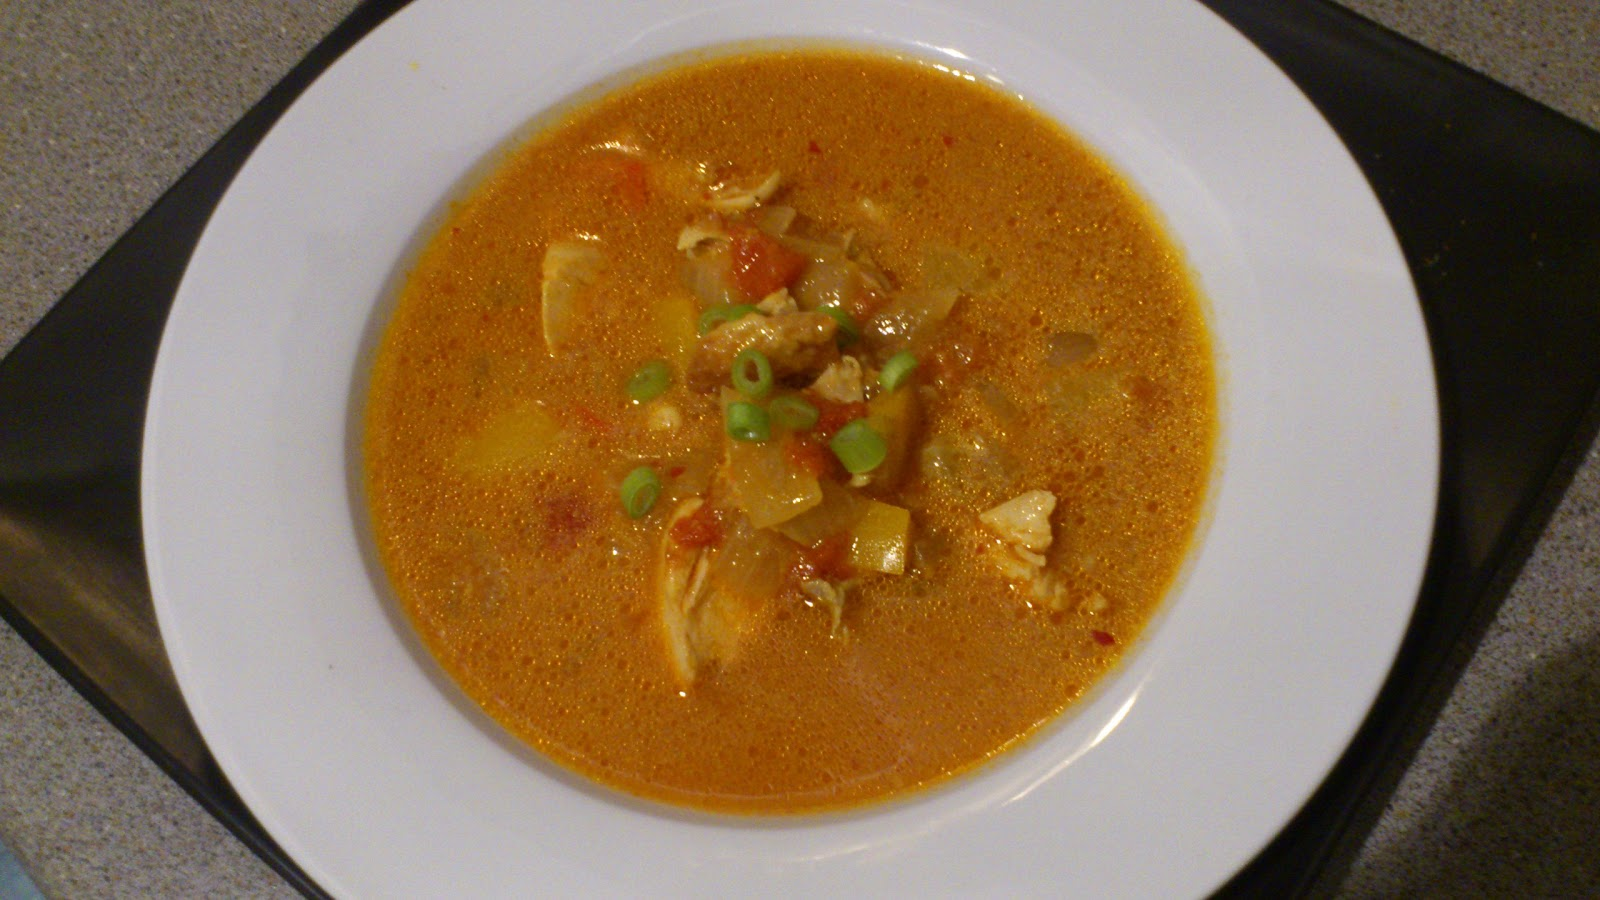 Soup Tuesday: African Chicken and Peanut Soup